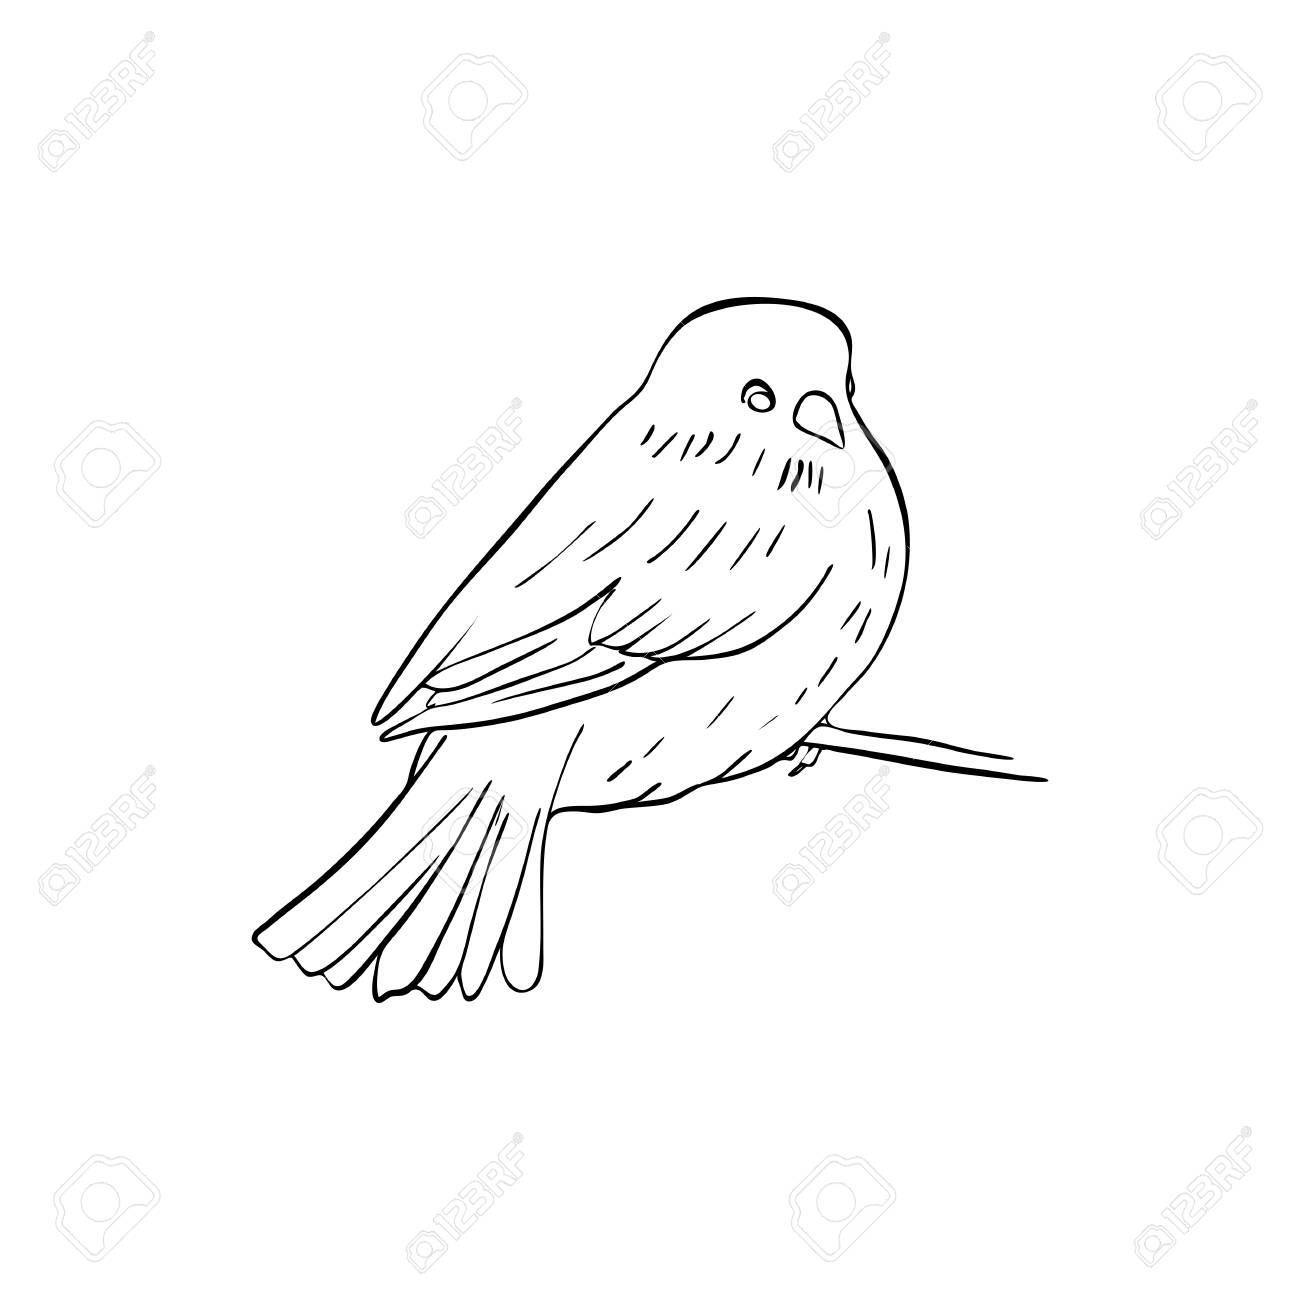 Vector Line Drawing Bird Sitting At Tree Branch Sketch Of Sparrow Royalty Free Cliparts Vectors And Stock Illustration Image 124674925